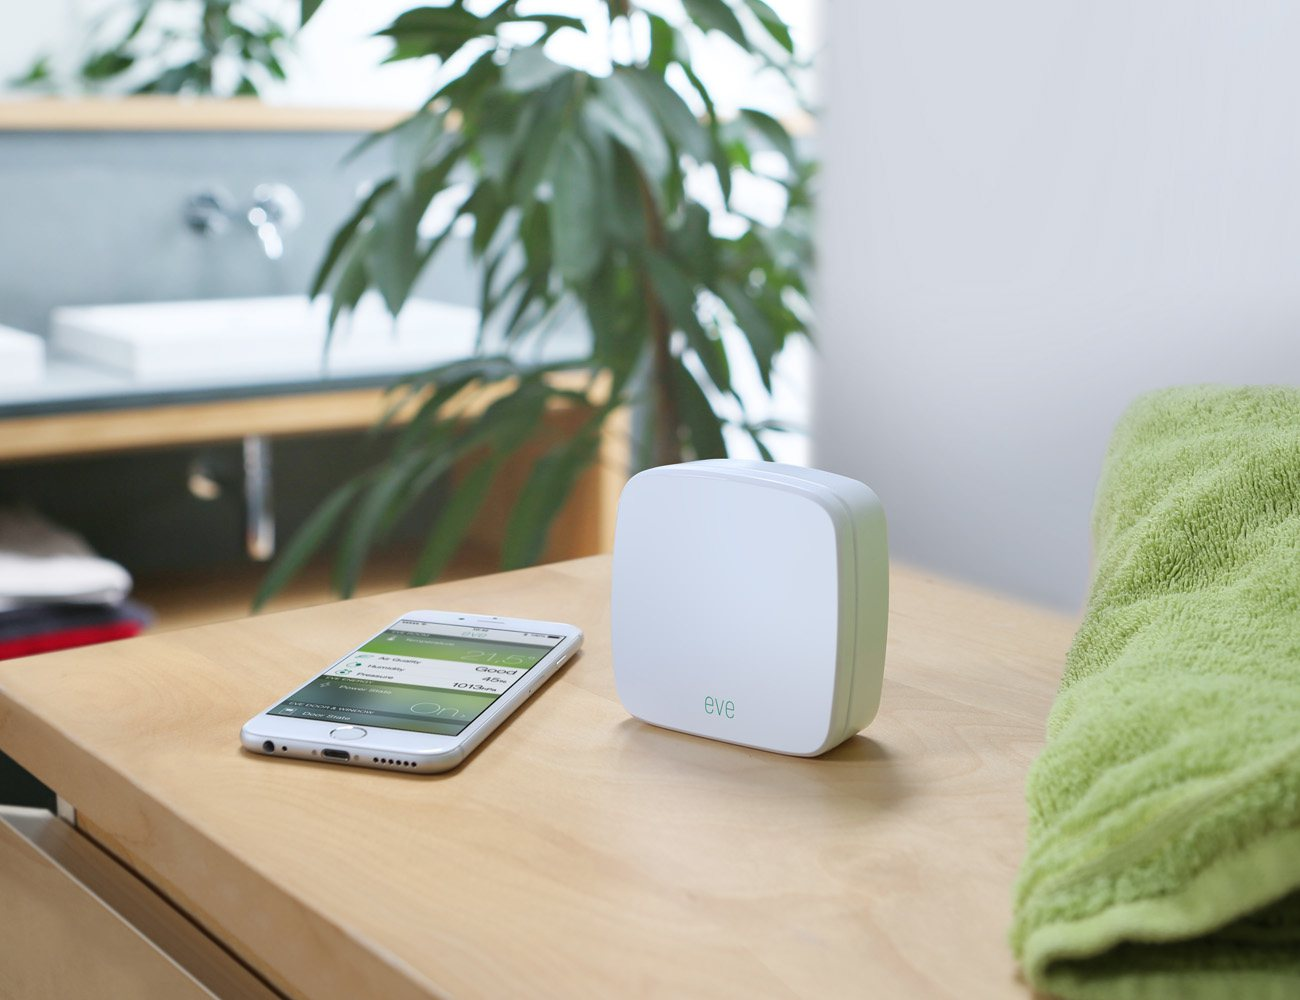 Elgato+Eve+Room+%26%238211%3B+Wireless+Indoor+Sensor+With+Apple+HomeKit+Technology